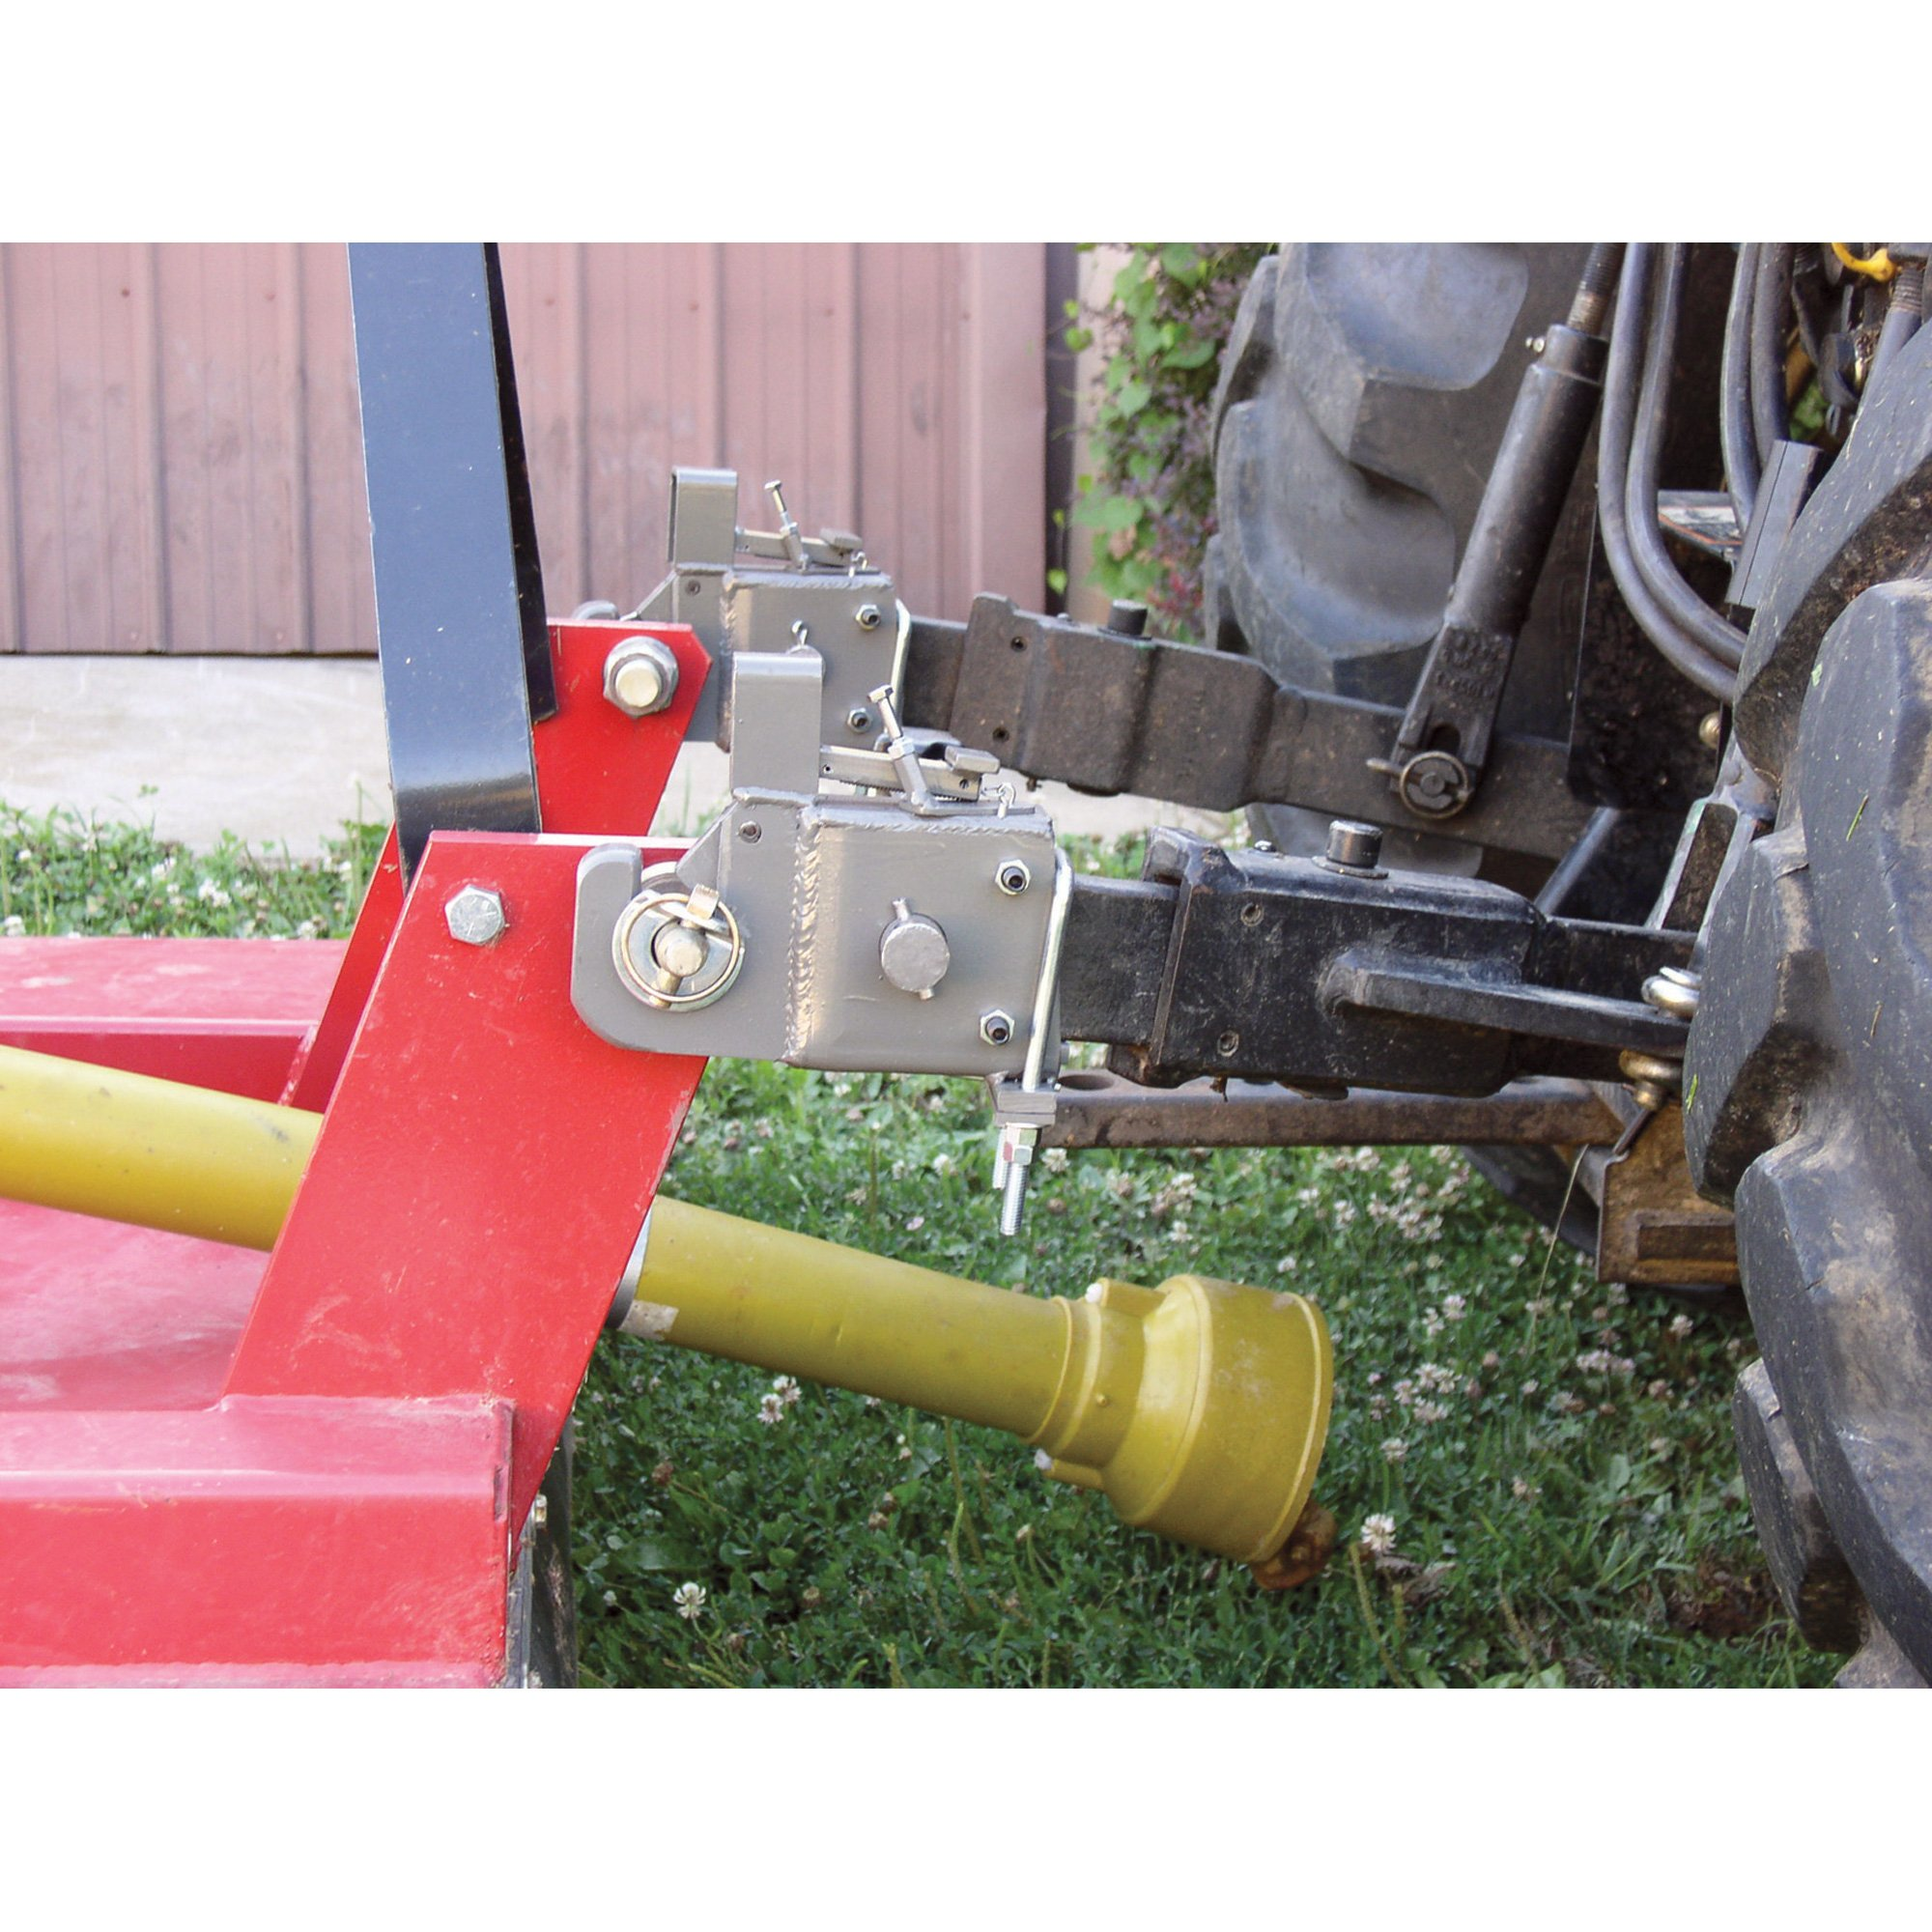 Pat's Premium 3-Point Quick Change Hitch - Category 1, 20,000-Lb. Lift Capacity by Northern Tool + Equipment